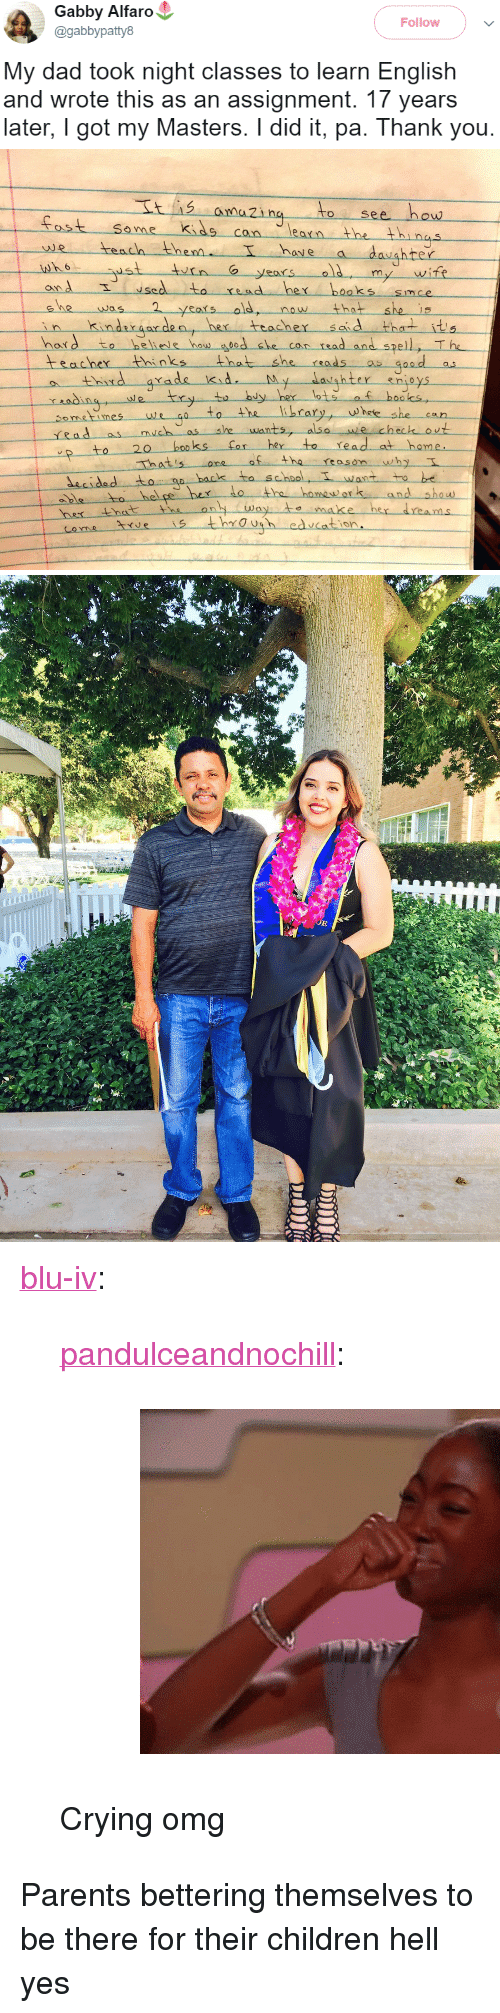 """Children, Crying, and Dad: Gabby Alfaro  @gabbypatty8  Follow  My dad took night classes to learn English  and wrote this as an assignment. 17 years  later, I got my Masters. I did it, pa. Thank you.   to see how  ost Se me kids cn lean the thi nas  earn  hove a  we teach then  onA  hord to heliele hau edshe c  have  hrer  6  my wife  sedto read her boaks smce  was  kndror den, he tracher s d thets  eMe  now that  can rsad and spell, T he  teacher Hhinksthat she ads d  y her lots f hooks,  thid arade kid  y,--whee-she-can  Sometimeswe  rRad as  20 booss for her to read at home  hatisone o the reason why  decidedto s  backs to school, T want to be  hel pe hex lo the homewor and show  es through edcation <p><a href=""""http://blu-iv.tumblr.com/post/164808374485/pandulceandnochill-crying-omg"""" class=""""tumblr_blog"""">blu-iv</a>:</p><blockquote> <p><a href=""""https://pandulceandnochill.tumblr.com/post/163909331164"""" class=""""tumblr_blog"""">pandulceandnochill</a>:</p> <blockquote><figure class=""""tmblr-full"""" data-orig-width=""""460"""" data-orig-height=""""345"""" data-tumblr-attribution=""""charnellecatastrophe:Wg_w7ohn_kgydqkokr629w:ZOzoGy1hNCsh2"""" data-orig-src=""""https://78.media.tumblr.com/52efffad03f7fcef53708c2062ee4306/tumblr_nm63ds5g3M1qcs7p4o1_500.gif""""><img src=""""https://78.media.tumblr.com/52efffad03f7fcef53708c2062ee4306/tumblr_inline_oubo68udOk1uy5ehh_540.gif"""" data-orig-width=""""460"""" data-orig-height=""""345"""" data-orig-src=""""https://78.media.tumblr.com/52efffad03f7fcef53708c2062ee4306/tumblr_nm63ds5g3M1qcs7p4o1_500.gif""""/></figure></blockquote>  <p>Crying omg </p> </blockquote>  <p>Parents bettering themselves to be there for their children hell yes</p>"""